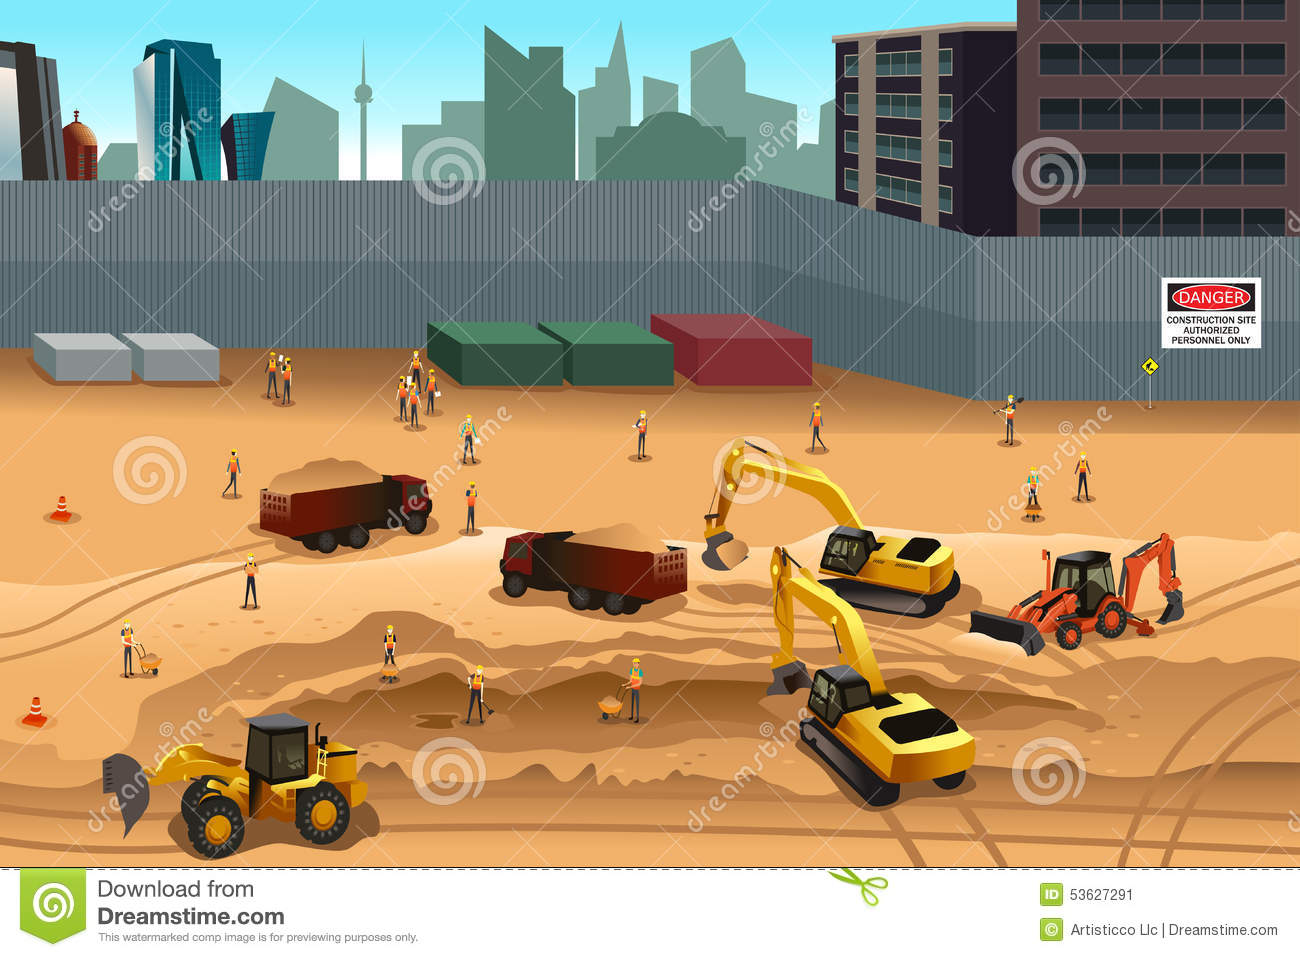 Road construction site clipart svg library stock Scene In A Construction Site Stock Vector - Image: 53627291 svg library stock